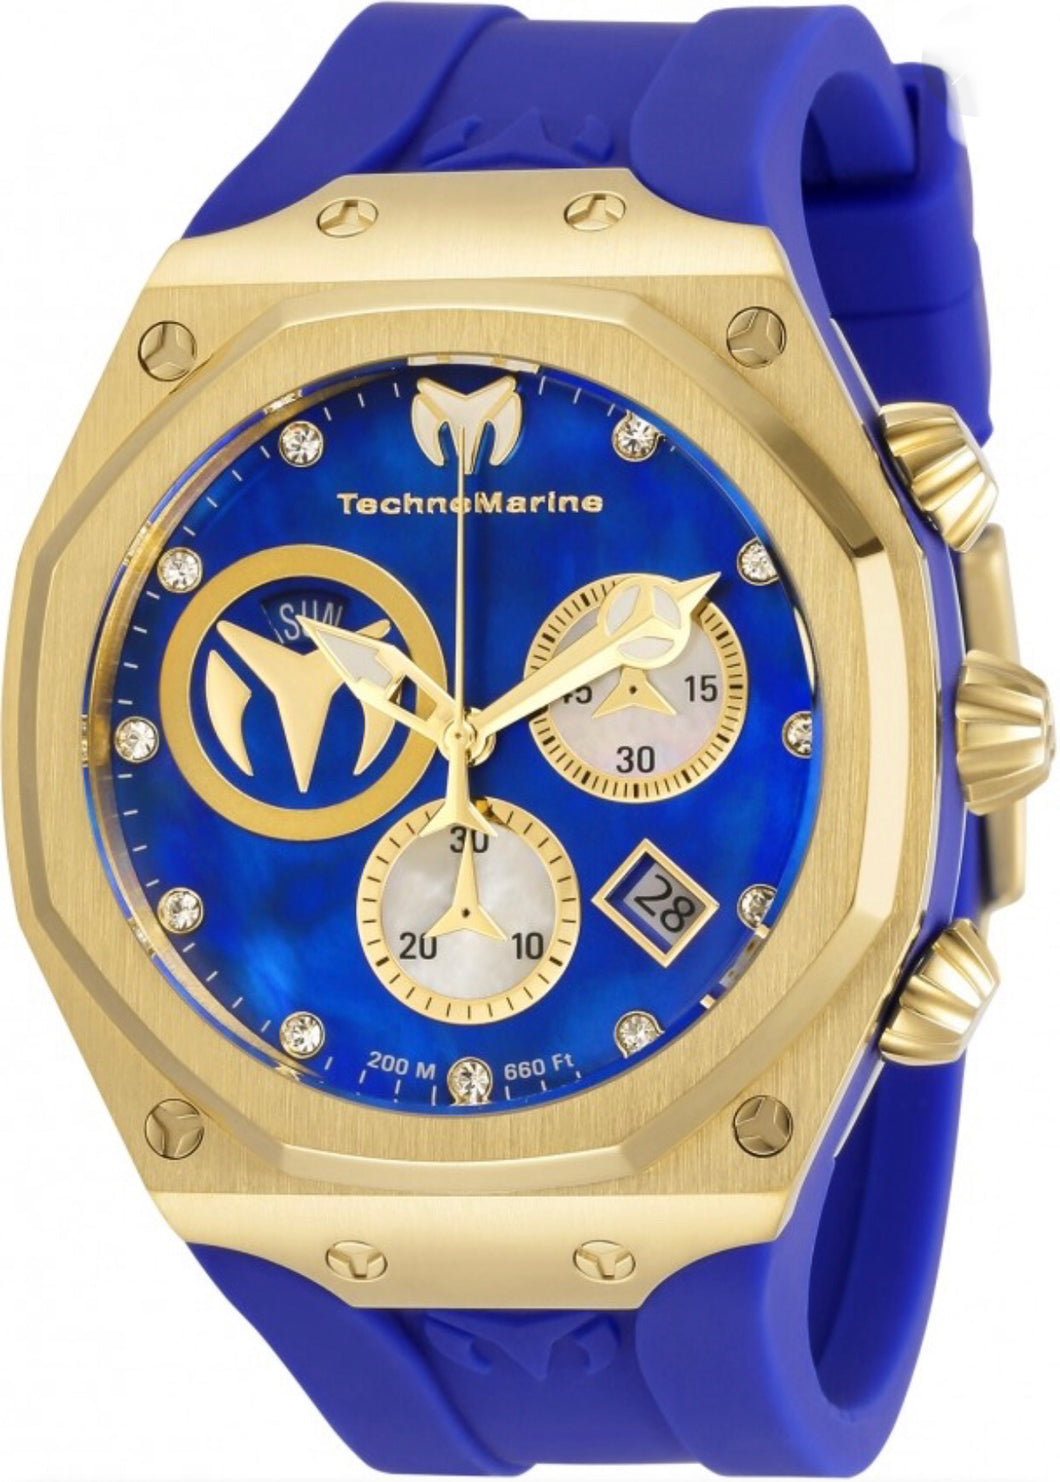 Technomarine Reef Sun Chronograph Quartz Crystal Men's Watch TM-519015 - Boutique Watches & More